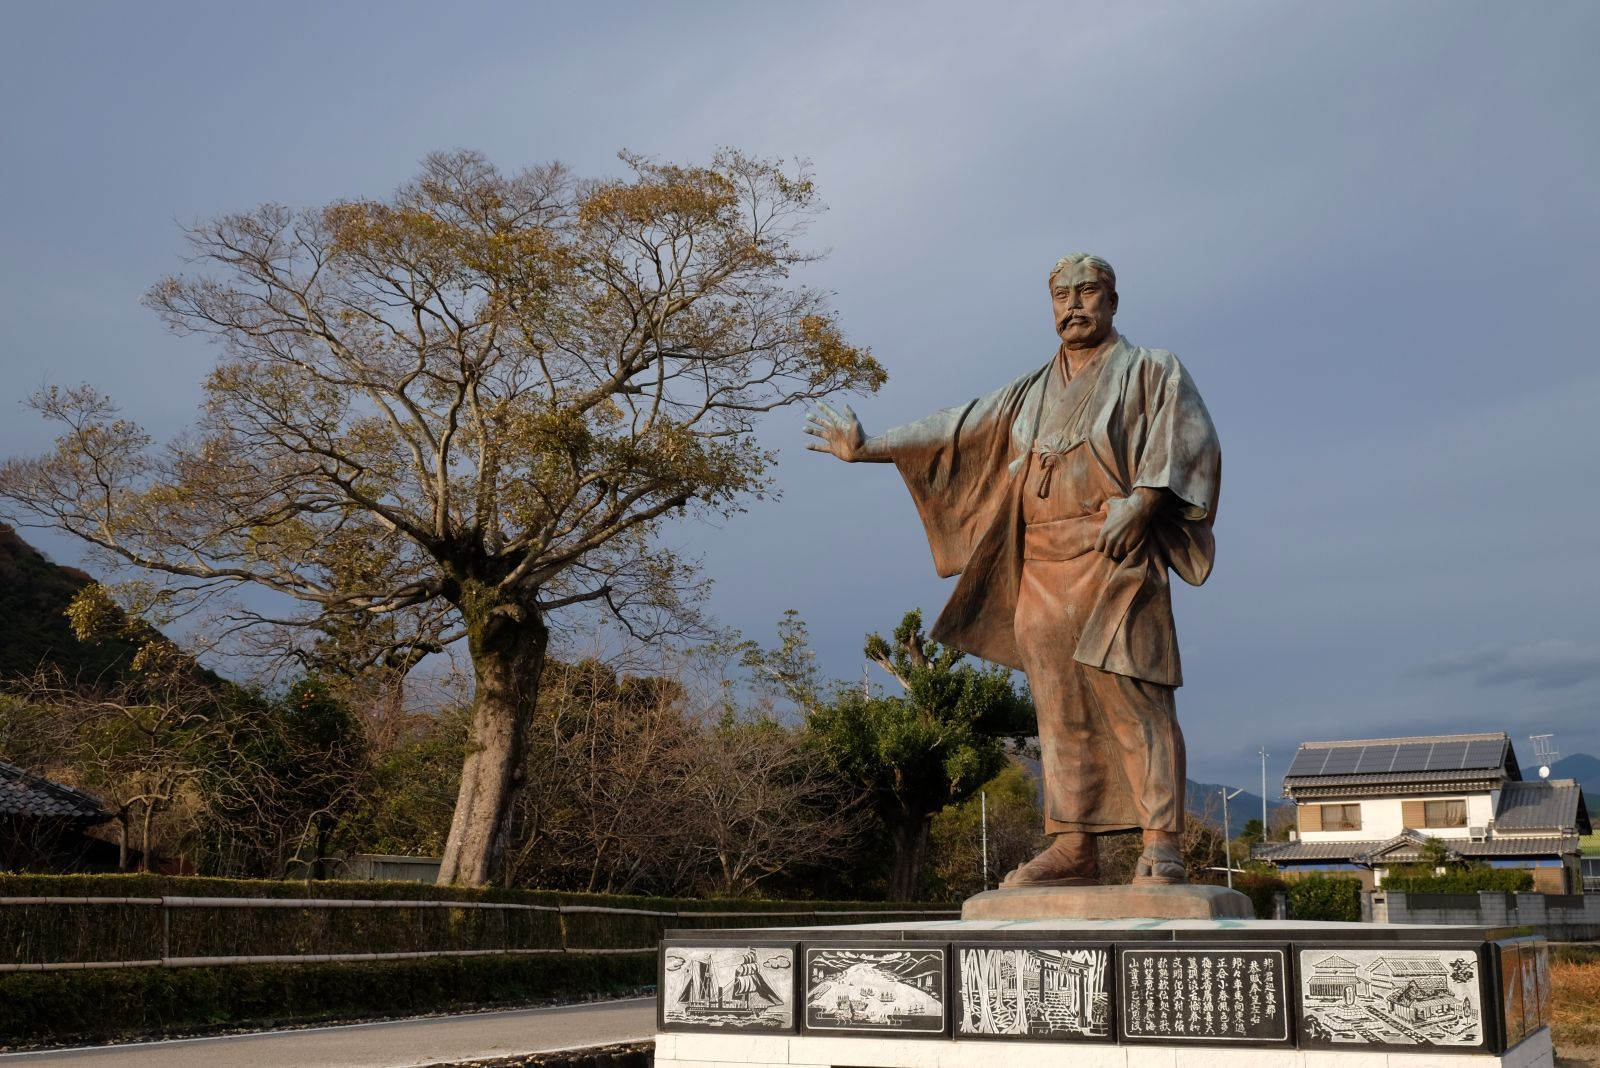 Birthplace of Iwasaki Yatarō in Aki, Kōchi. This dramatic statue stands next to the home of Iwasaki, the found of the Mitsubishi Group.